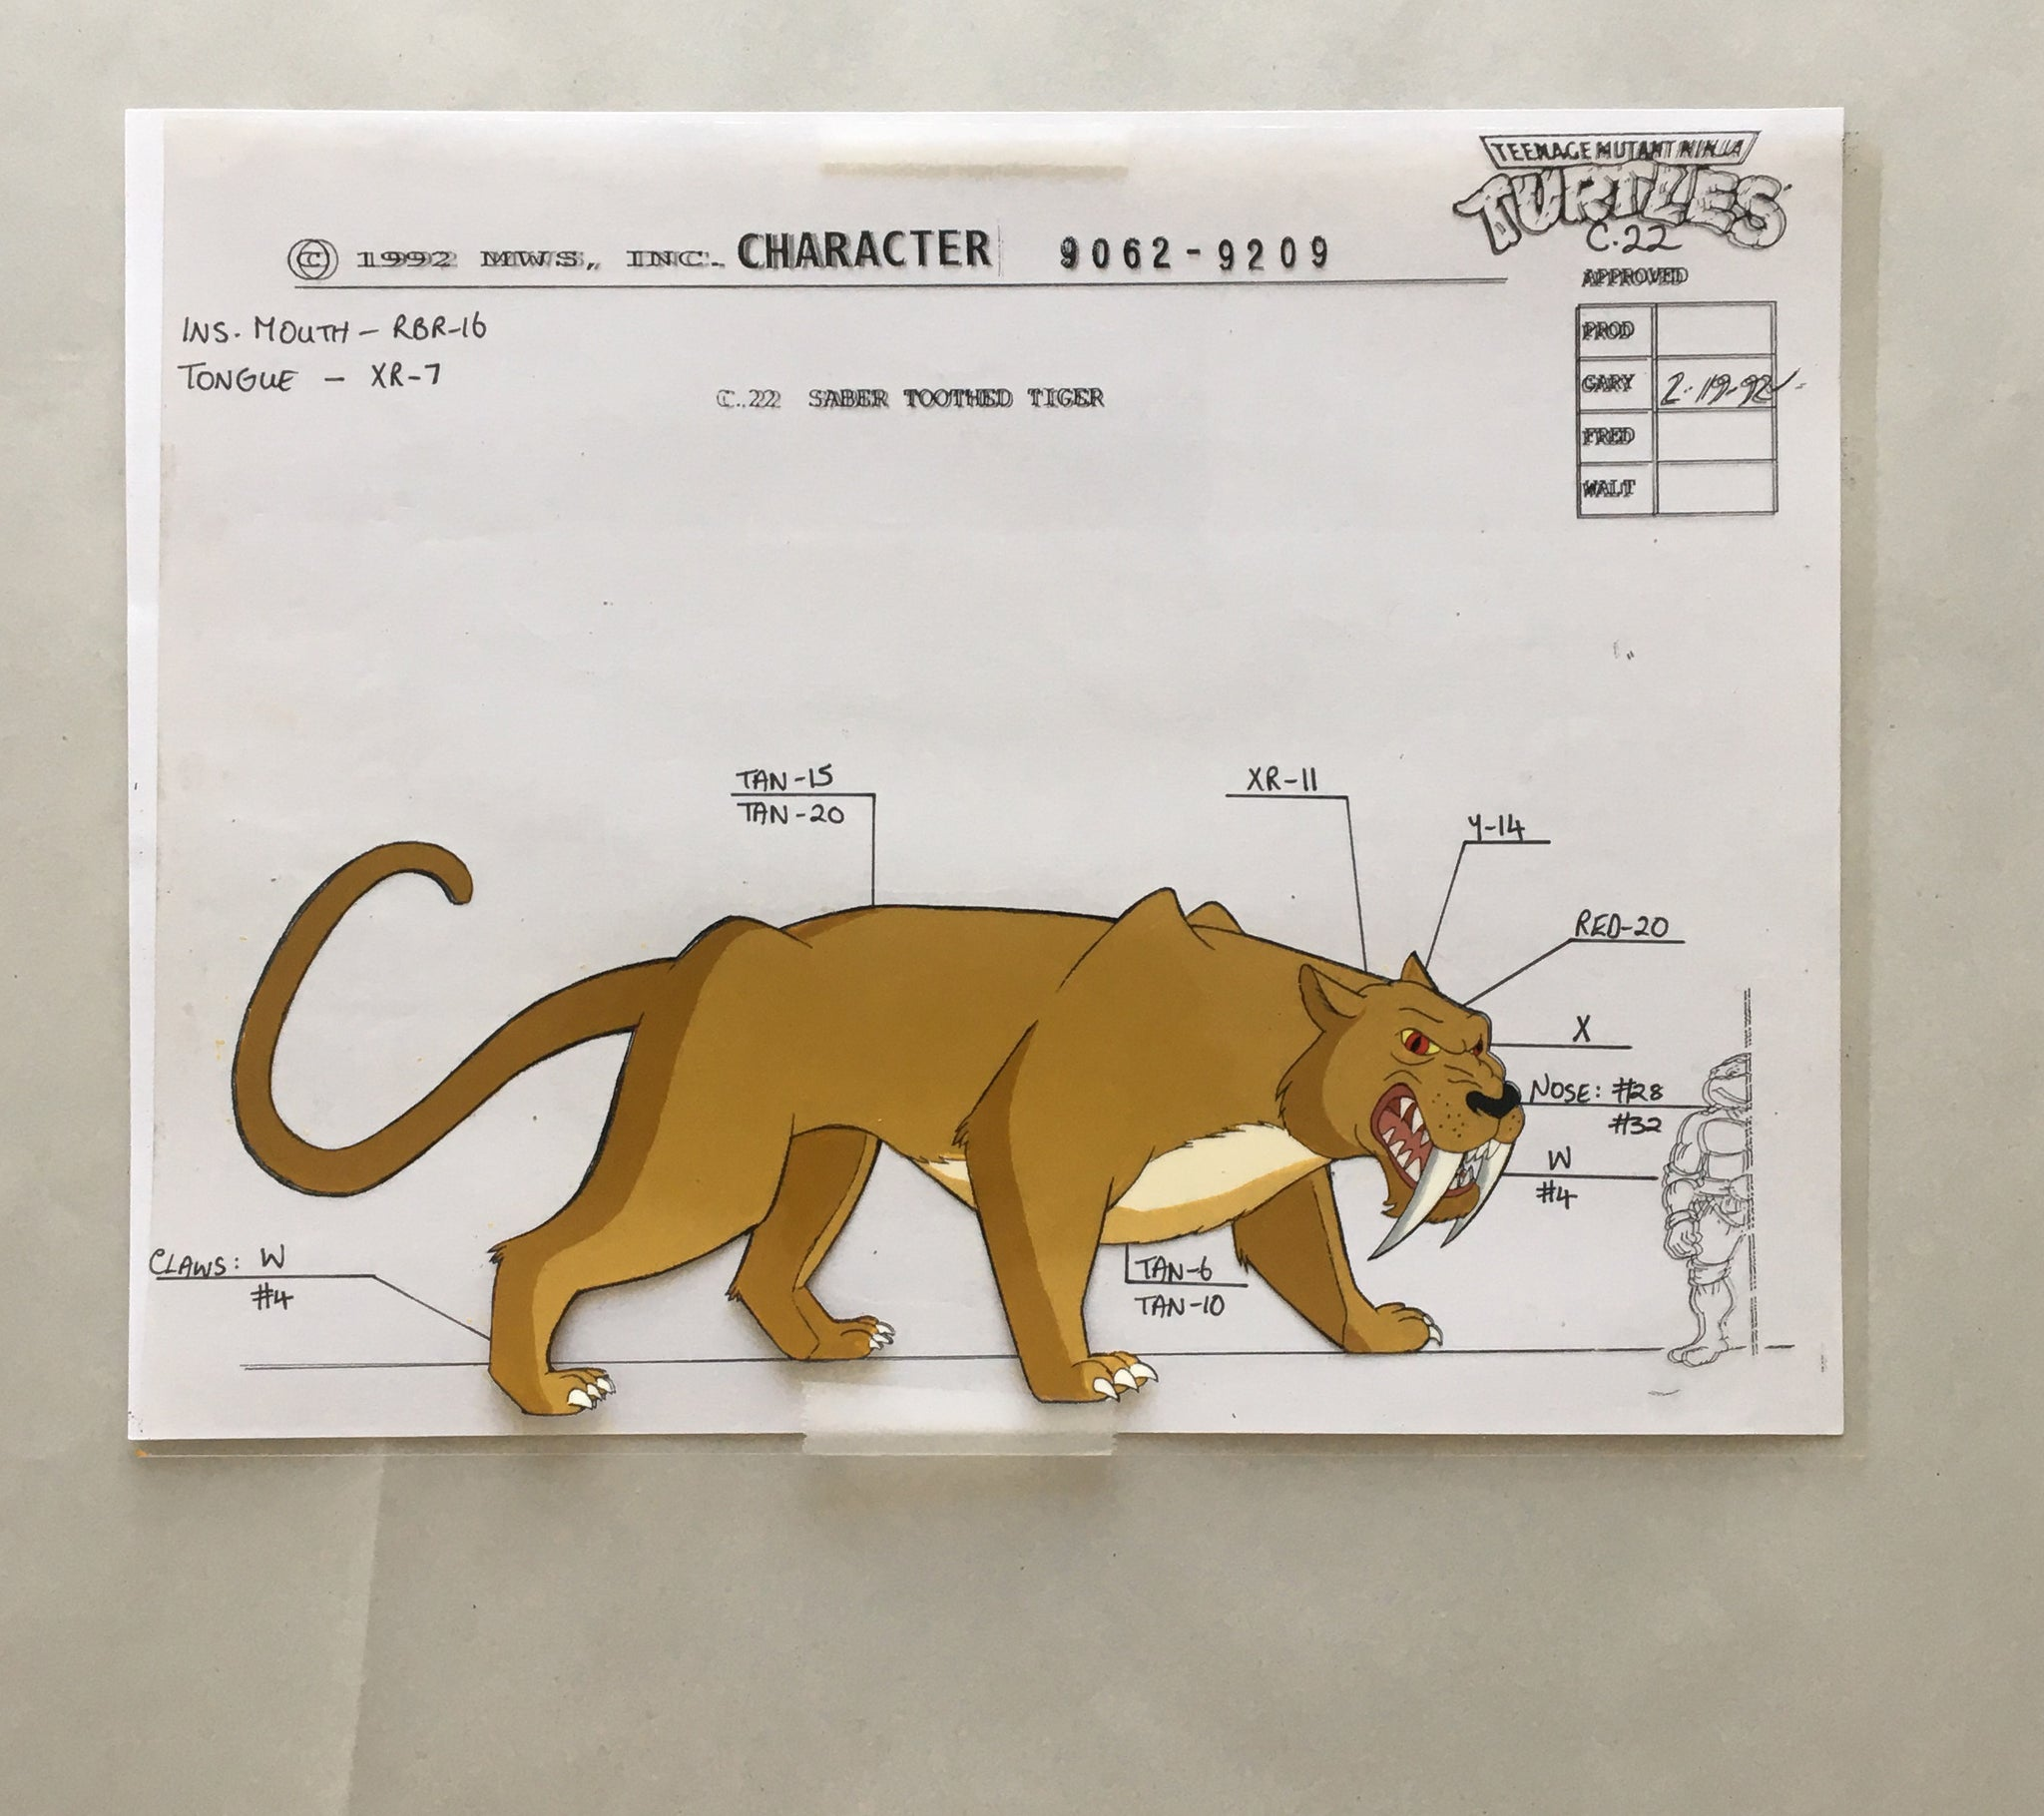 TMNT Character Sheet: Cel of Saber Tooth Tiger (EX0014) - Animation Legends